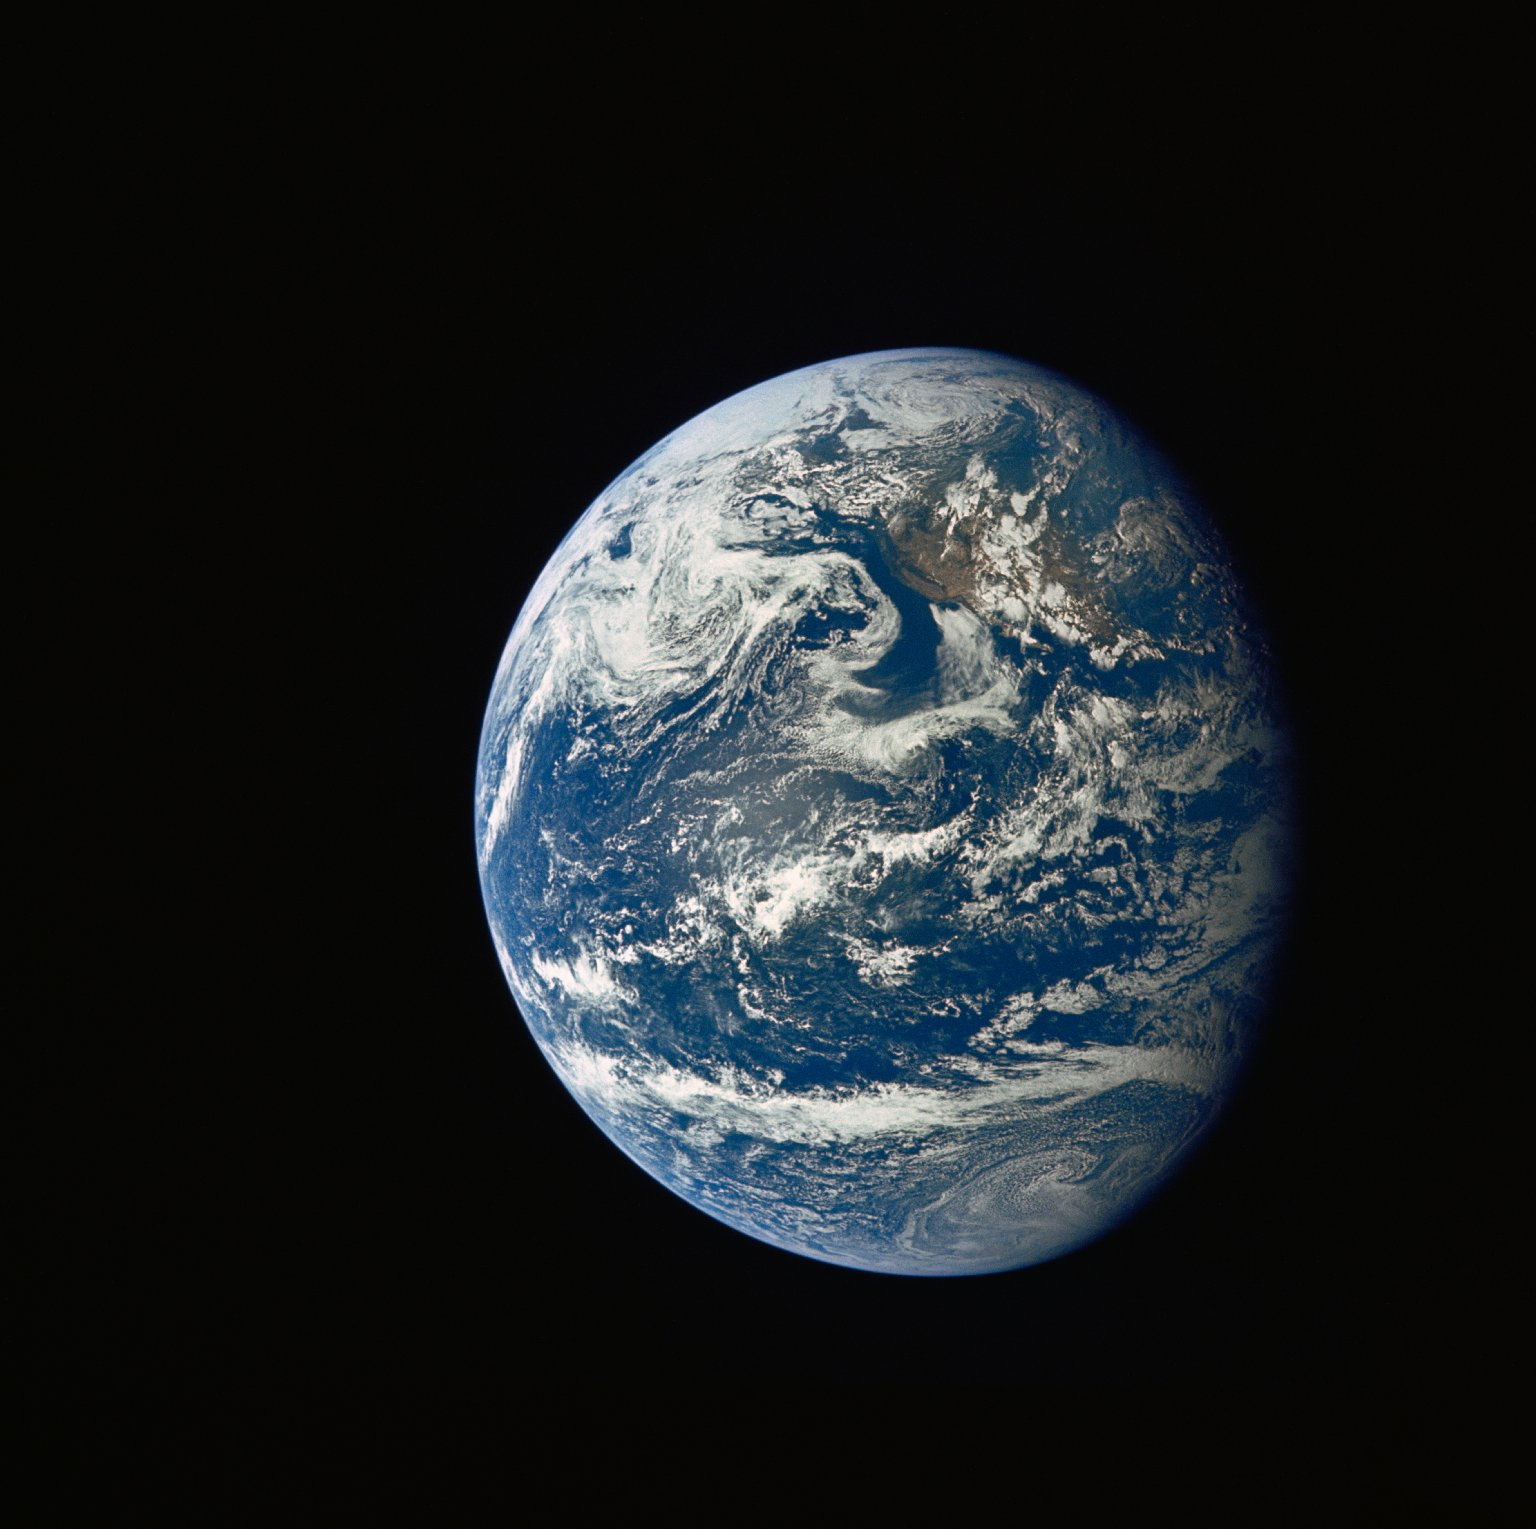 Image of Earth from space - NASA/Flicr